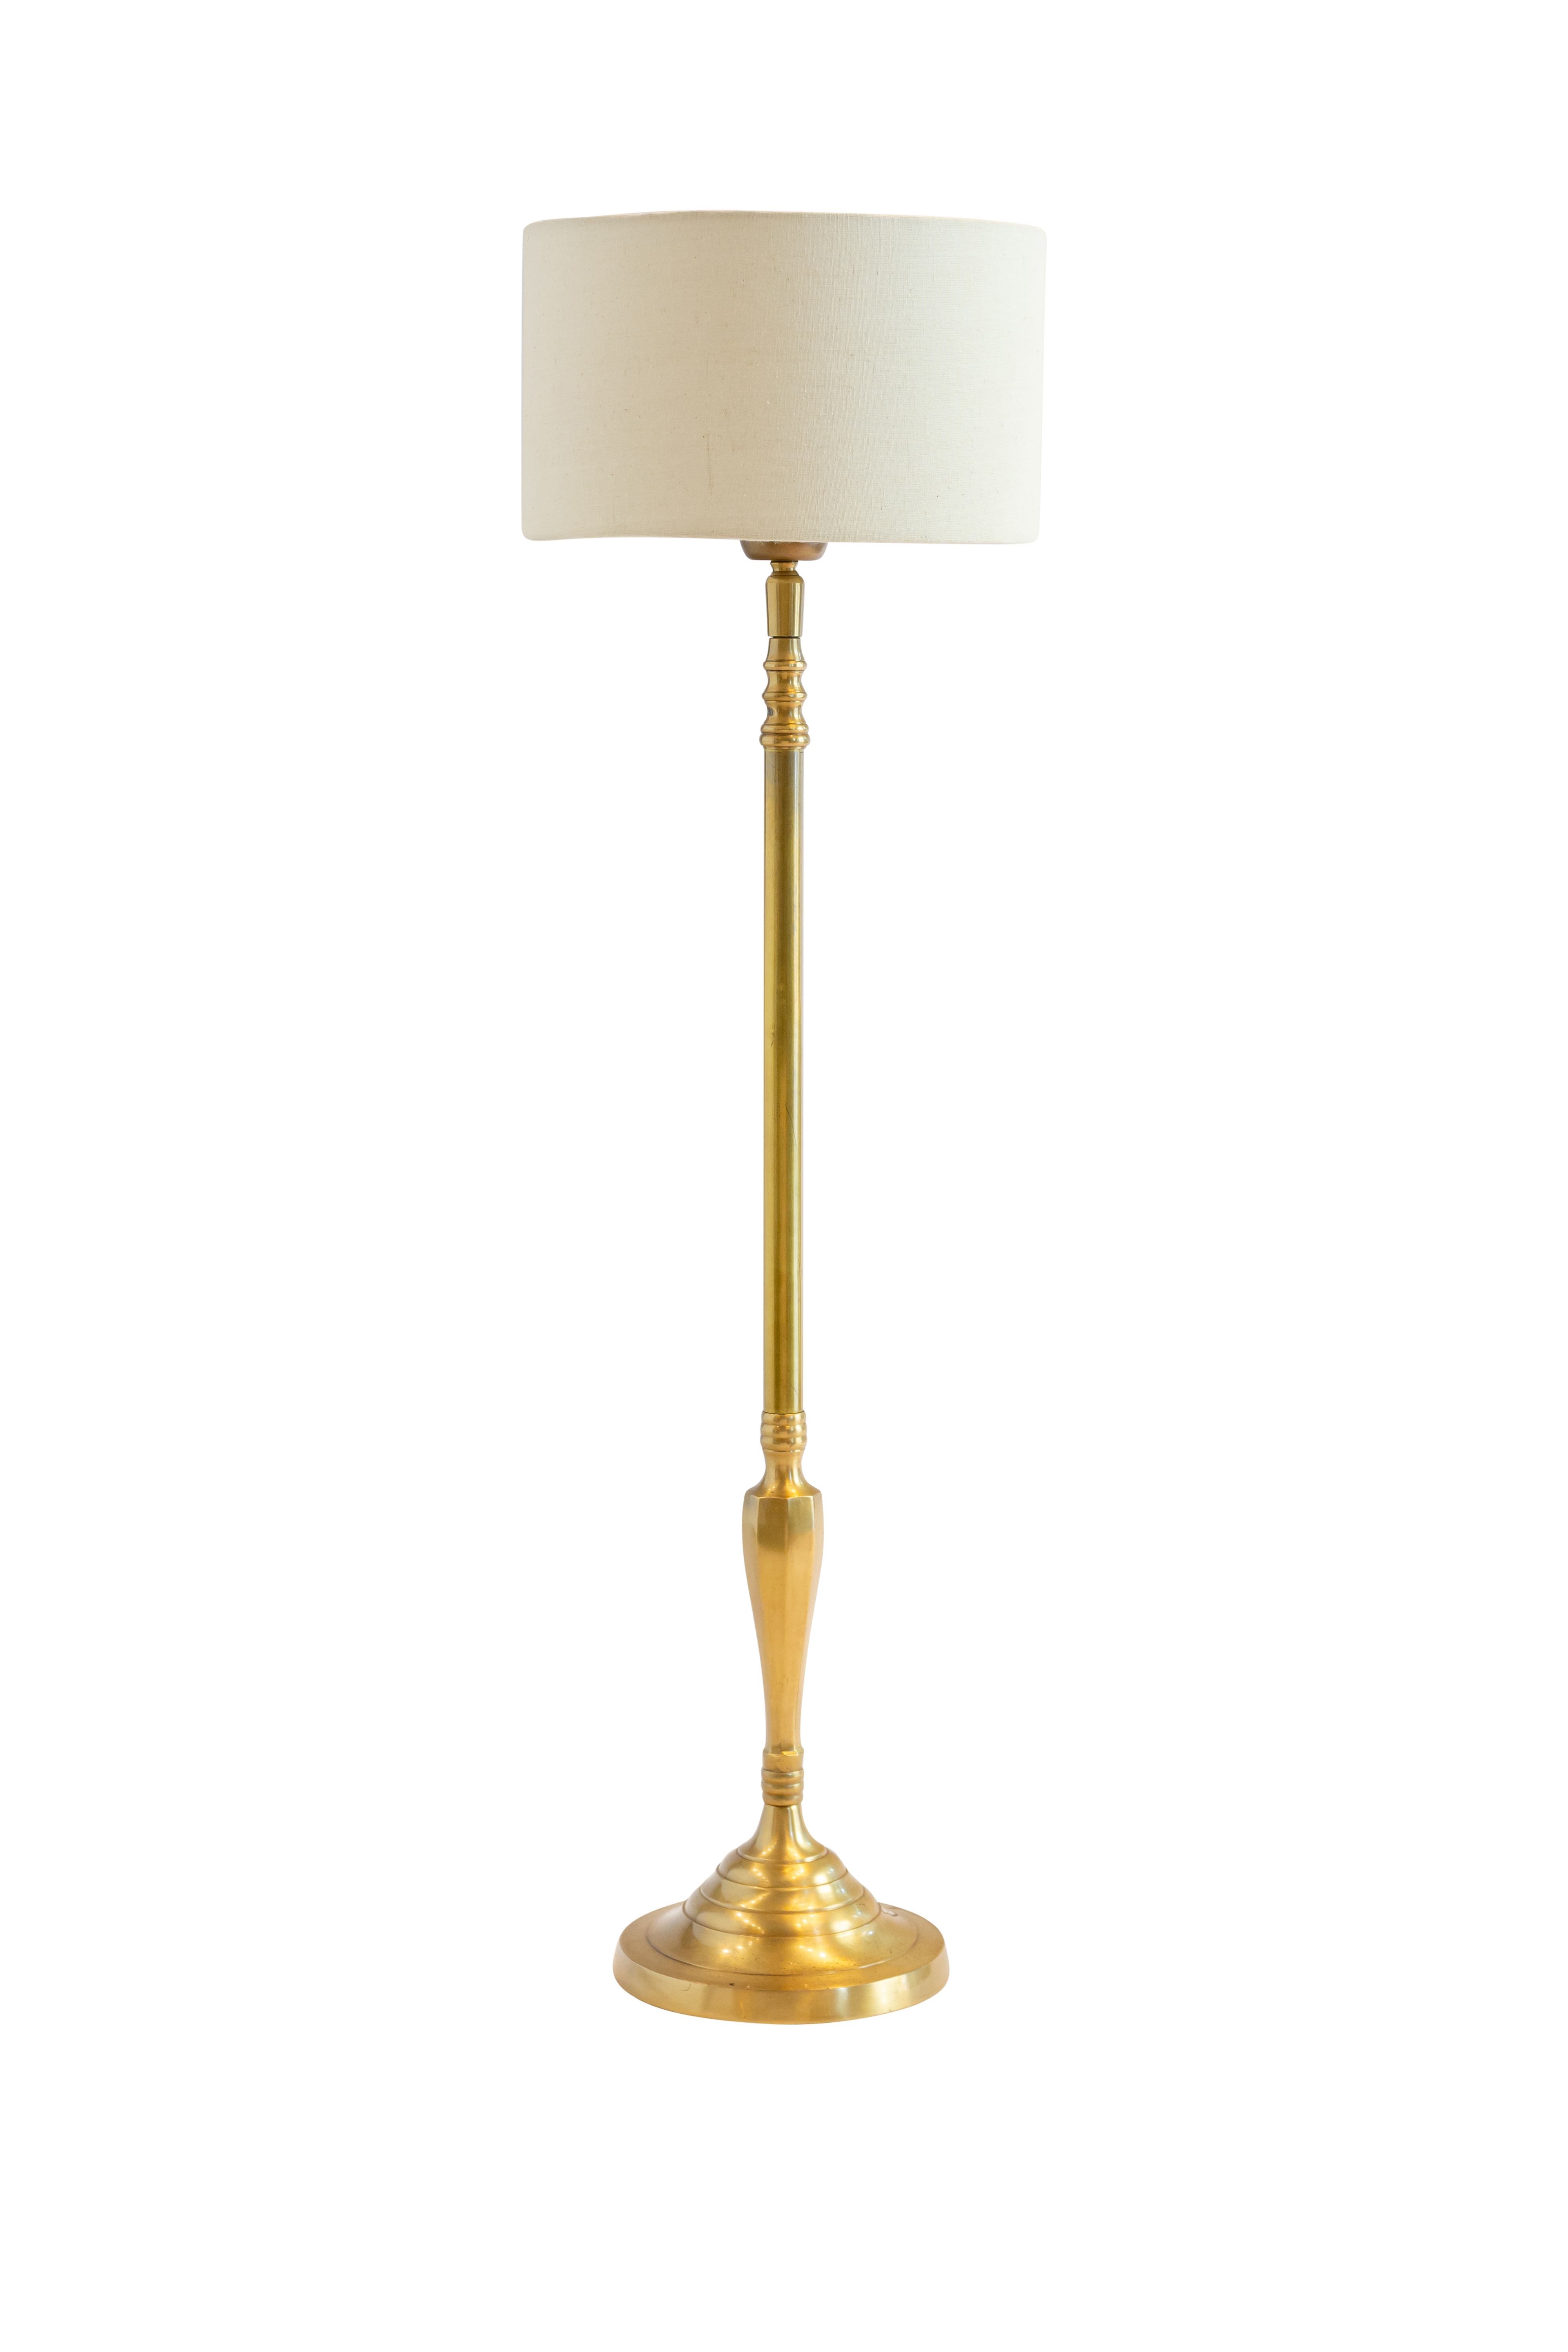 Indian table lamp with gold base